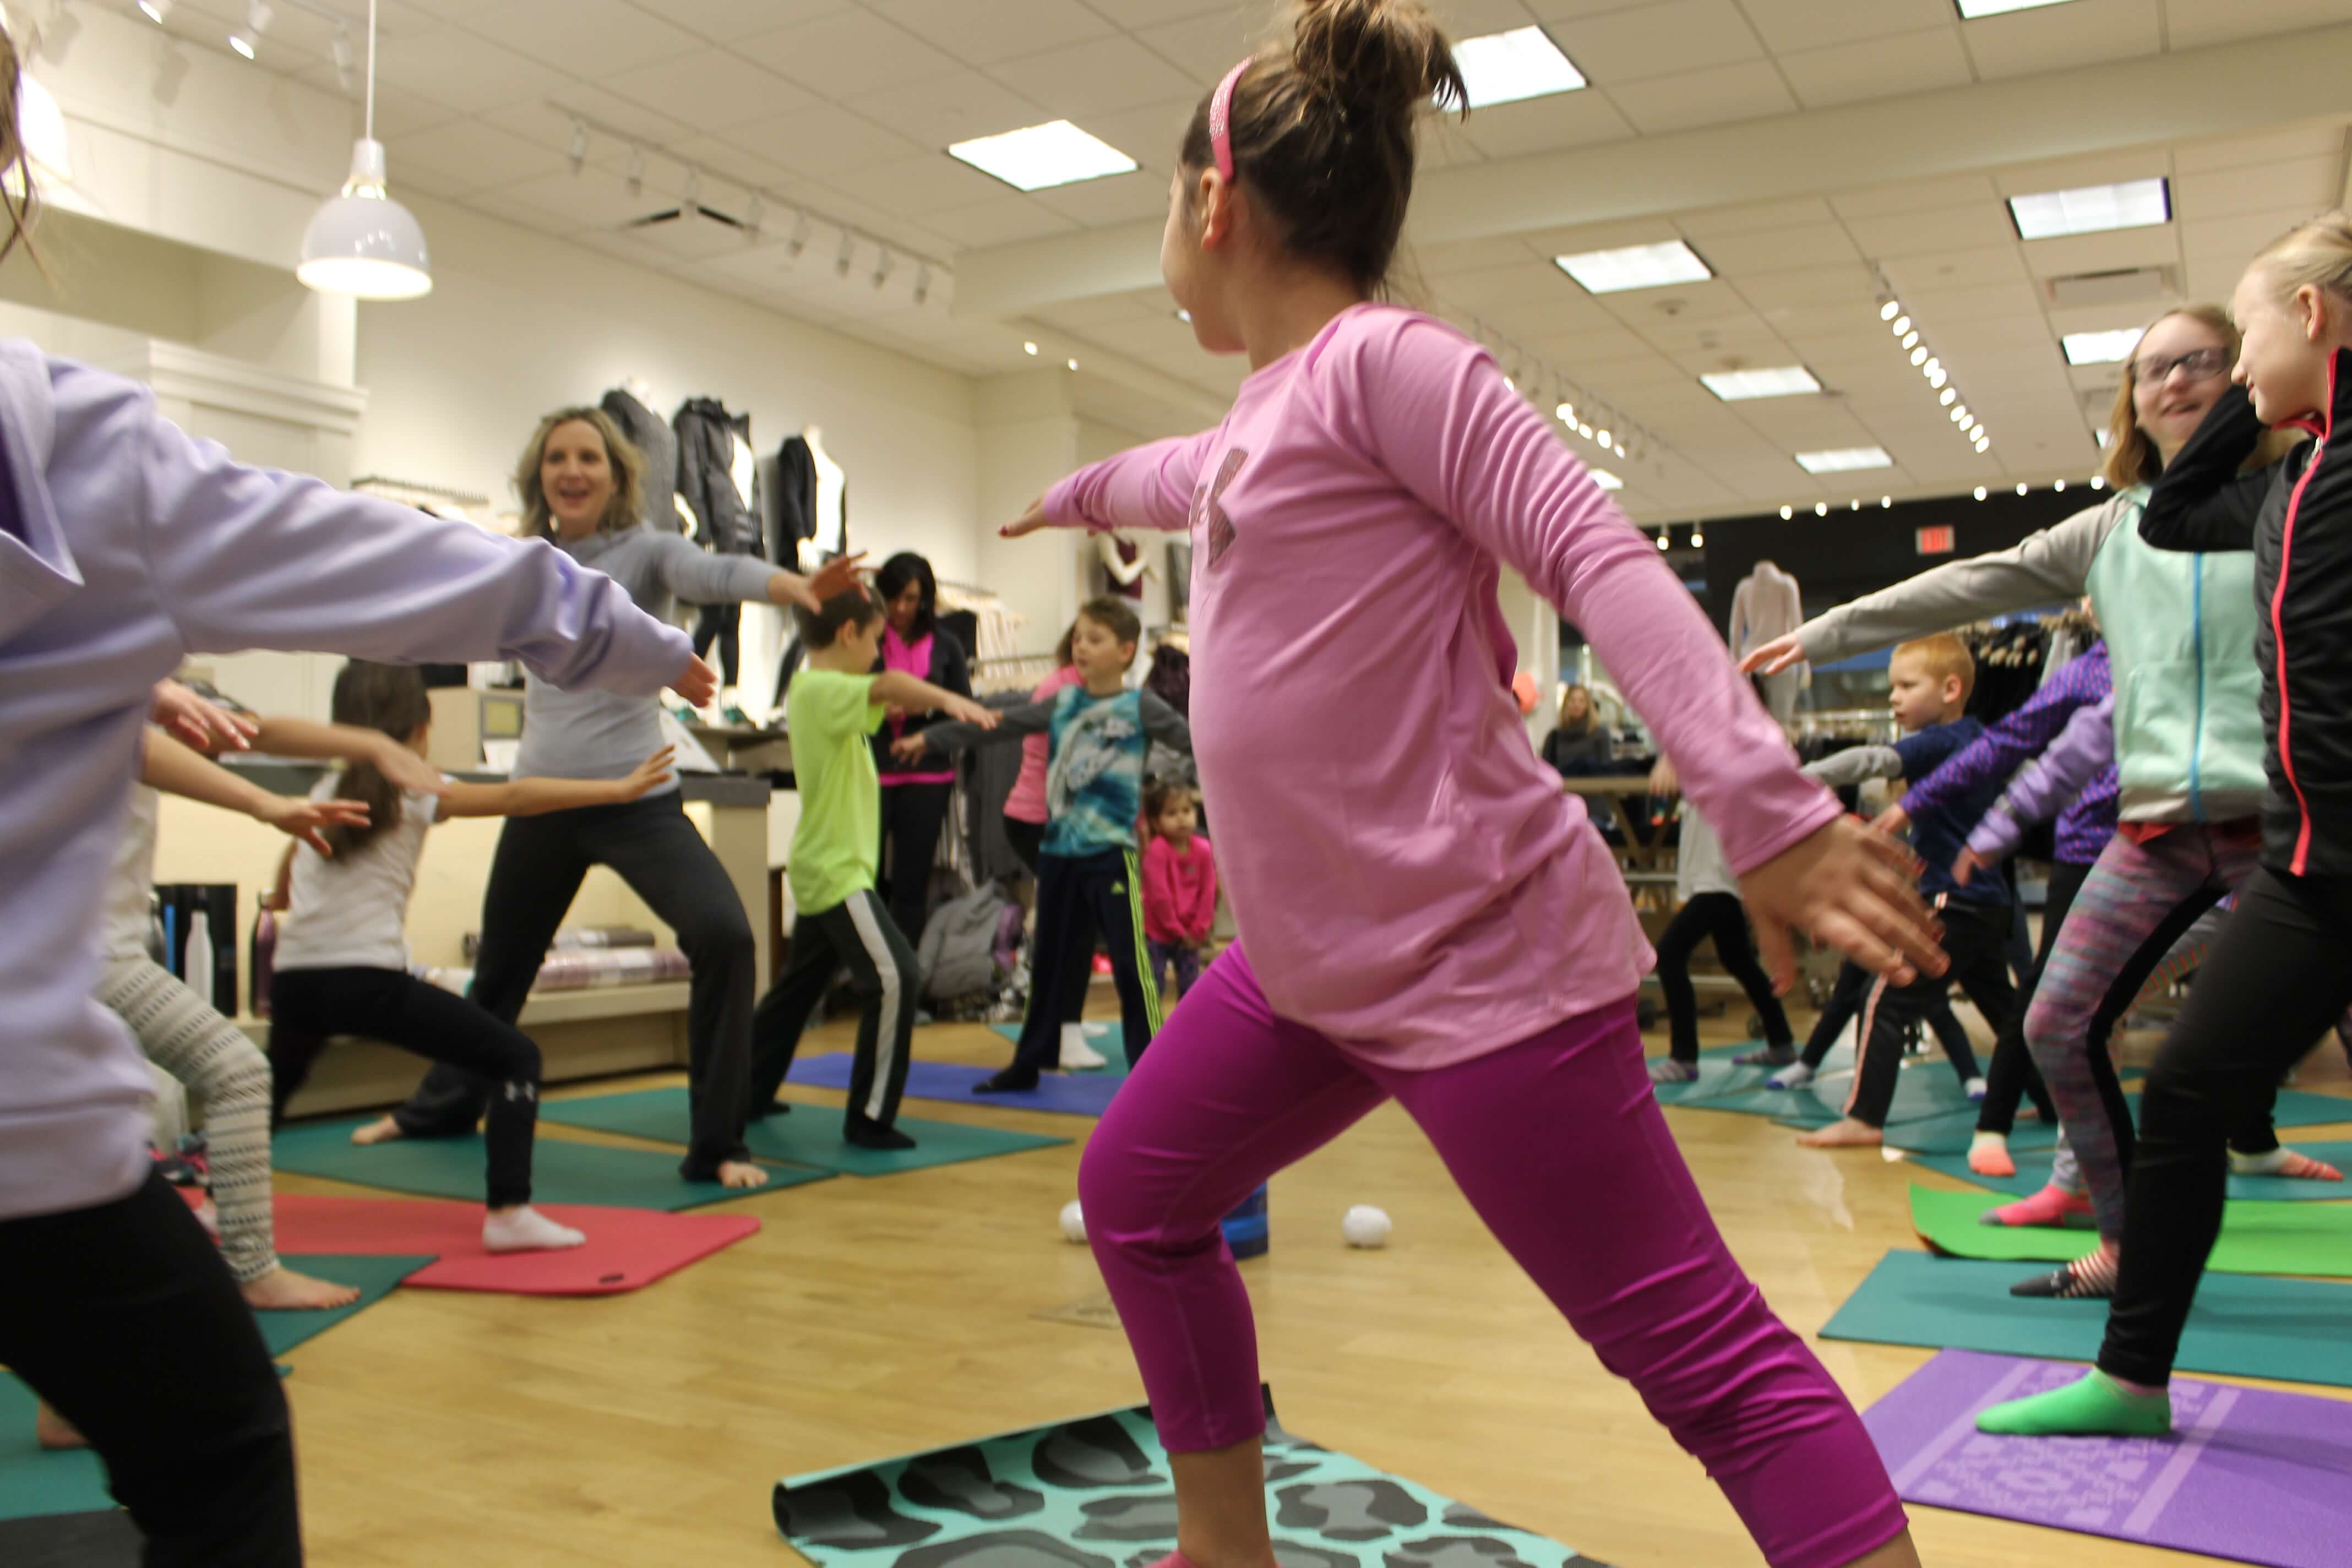 Winter Yoga Class With Kids - Go Go Yoga For Kids